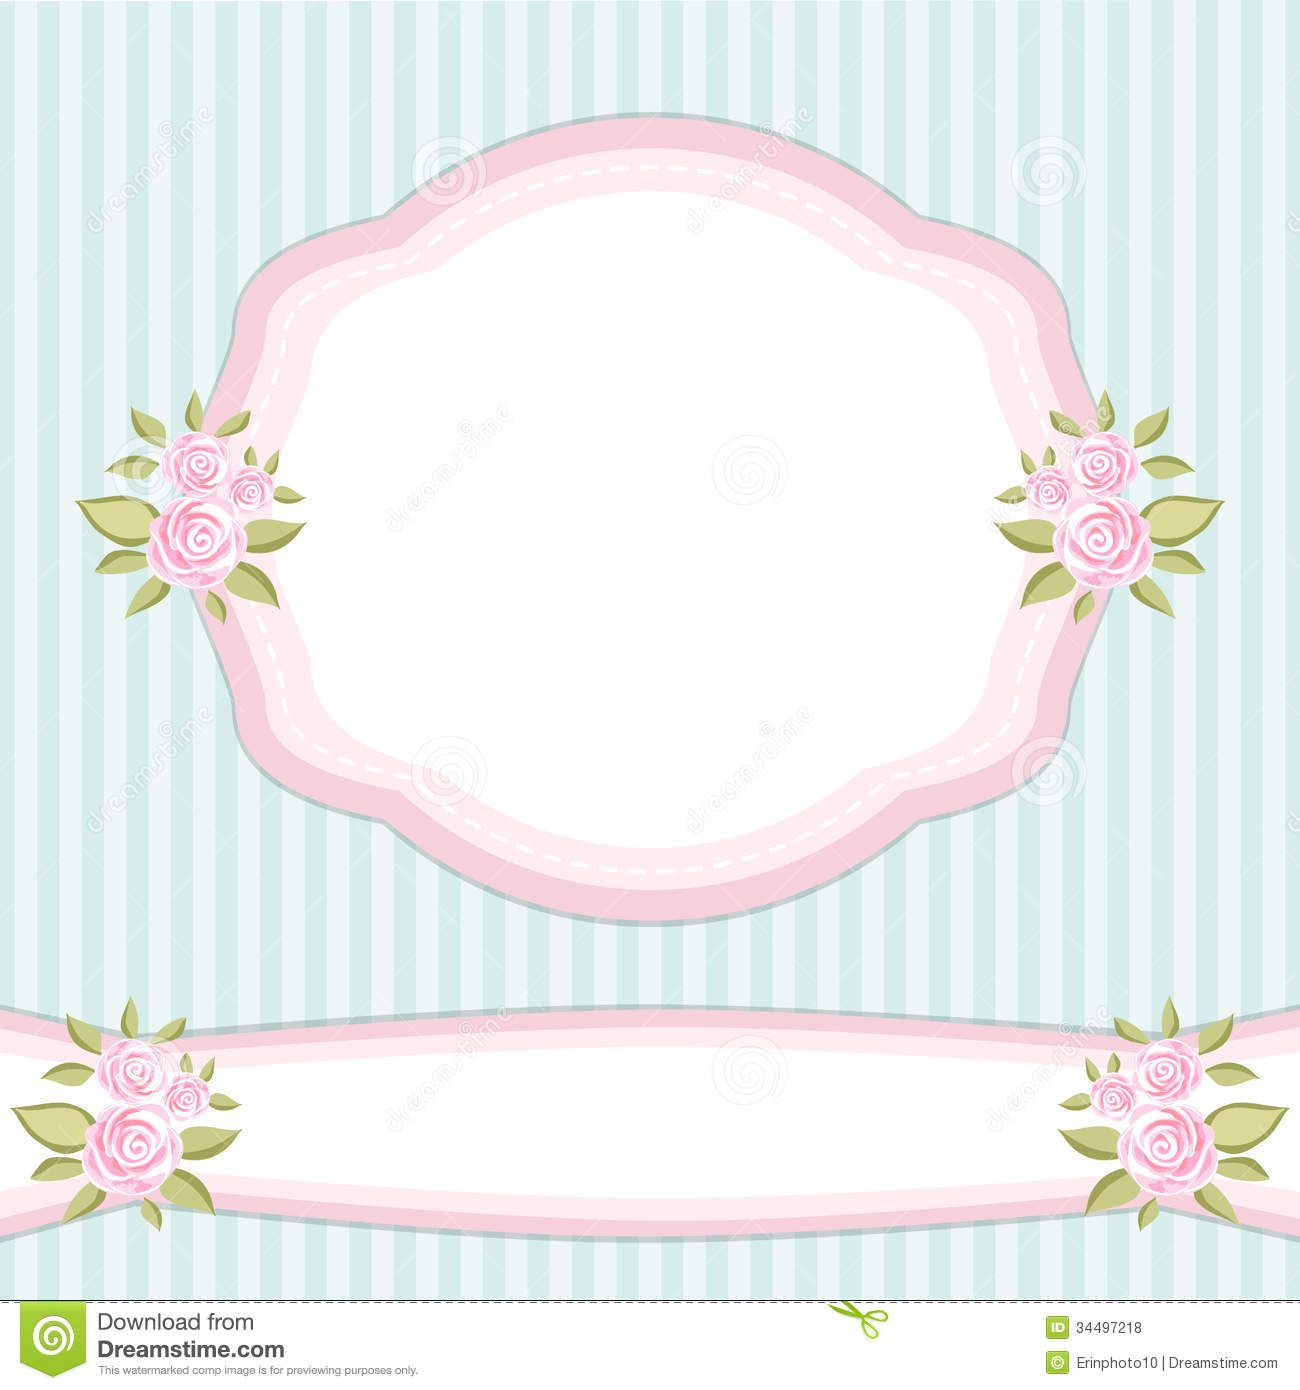 Shabby Chic Wallpaper Border Vintage Fl Frame With Roses In Style